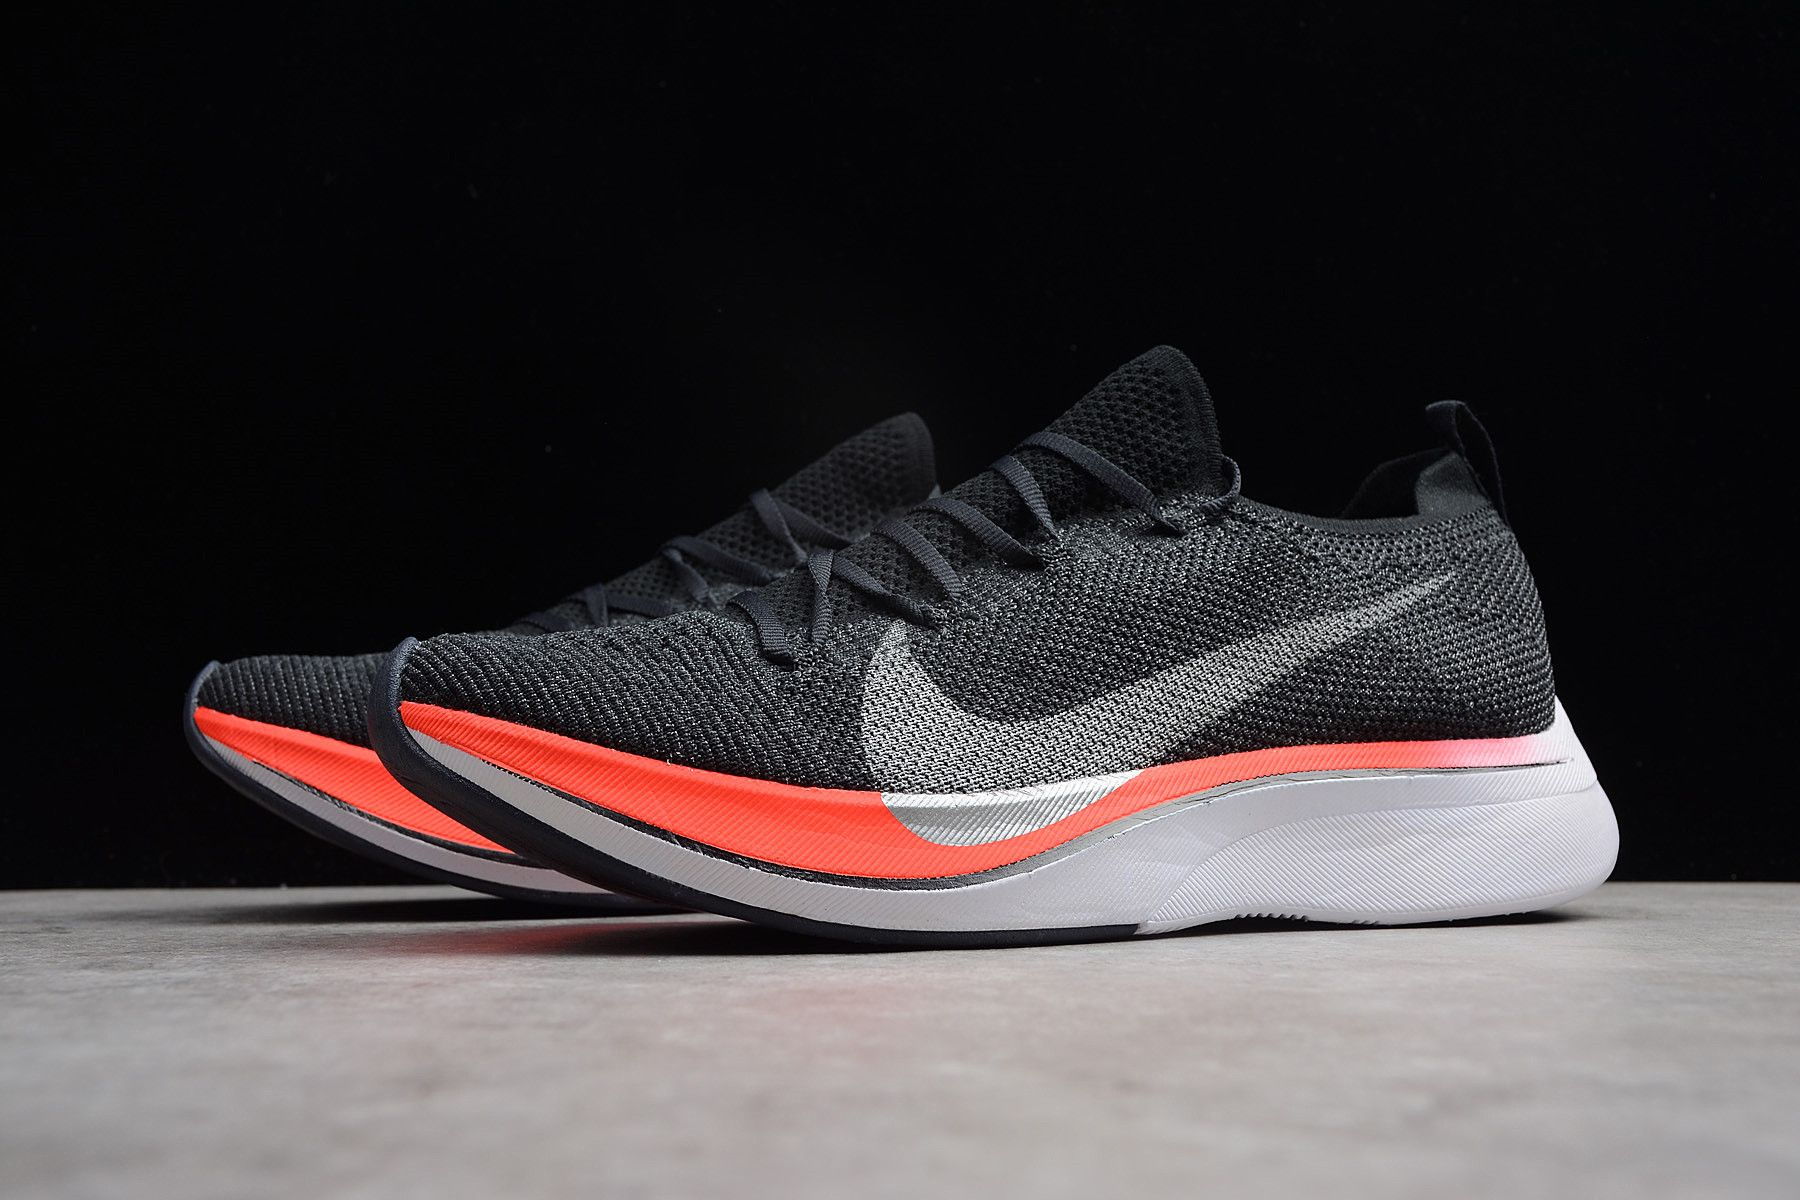 295c02ddeca4c Nike Vaporfly 4% Flyknit Blue Fox Black-Bright Crimson AJ3857-400 in ...